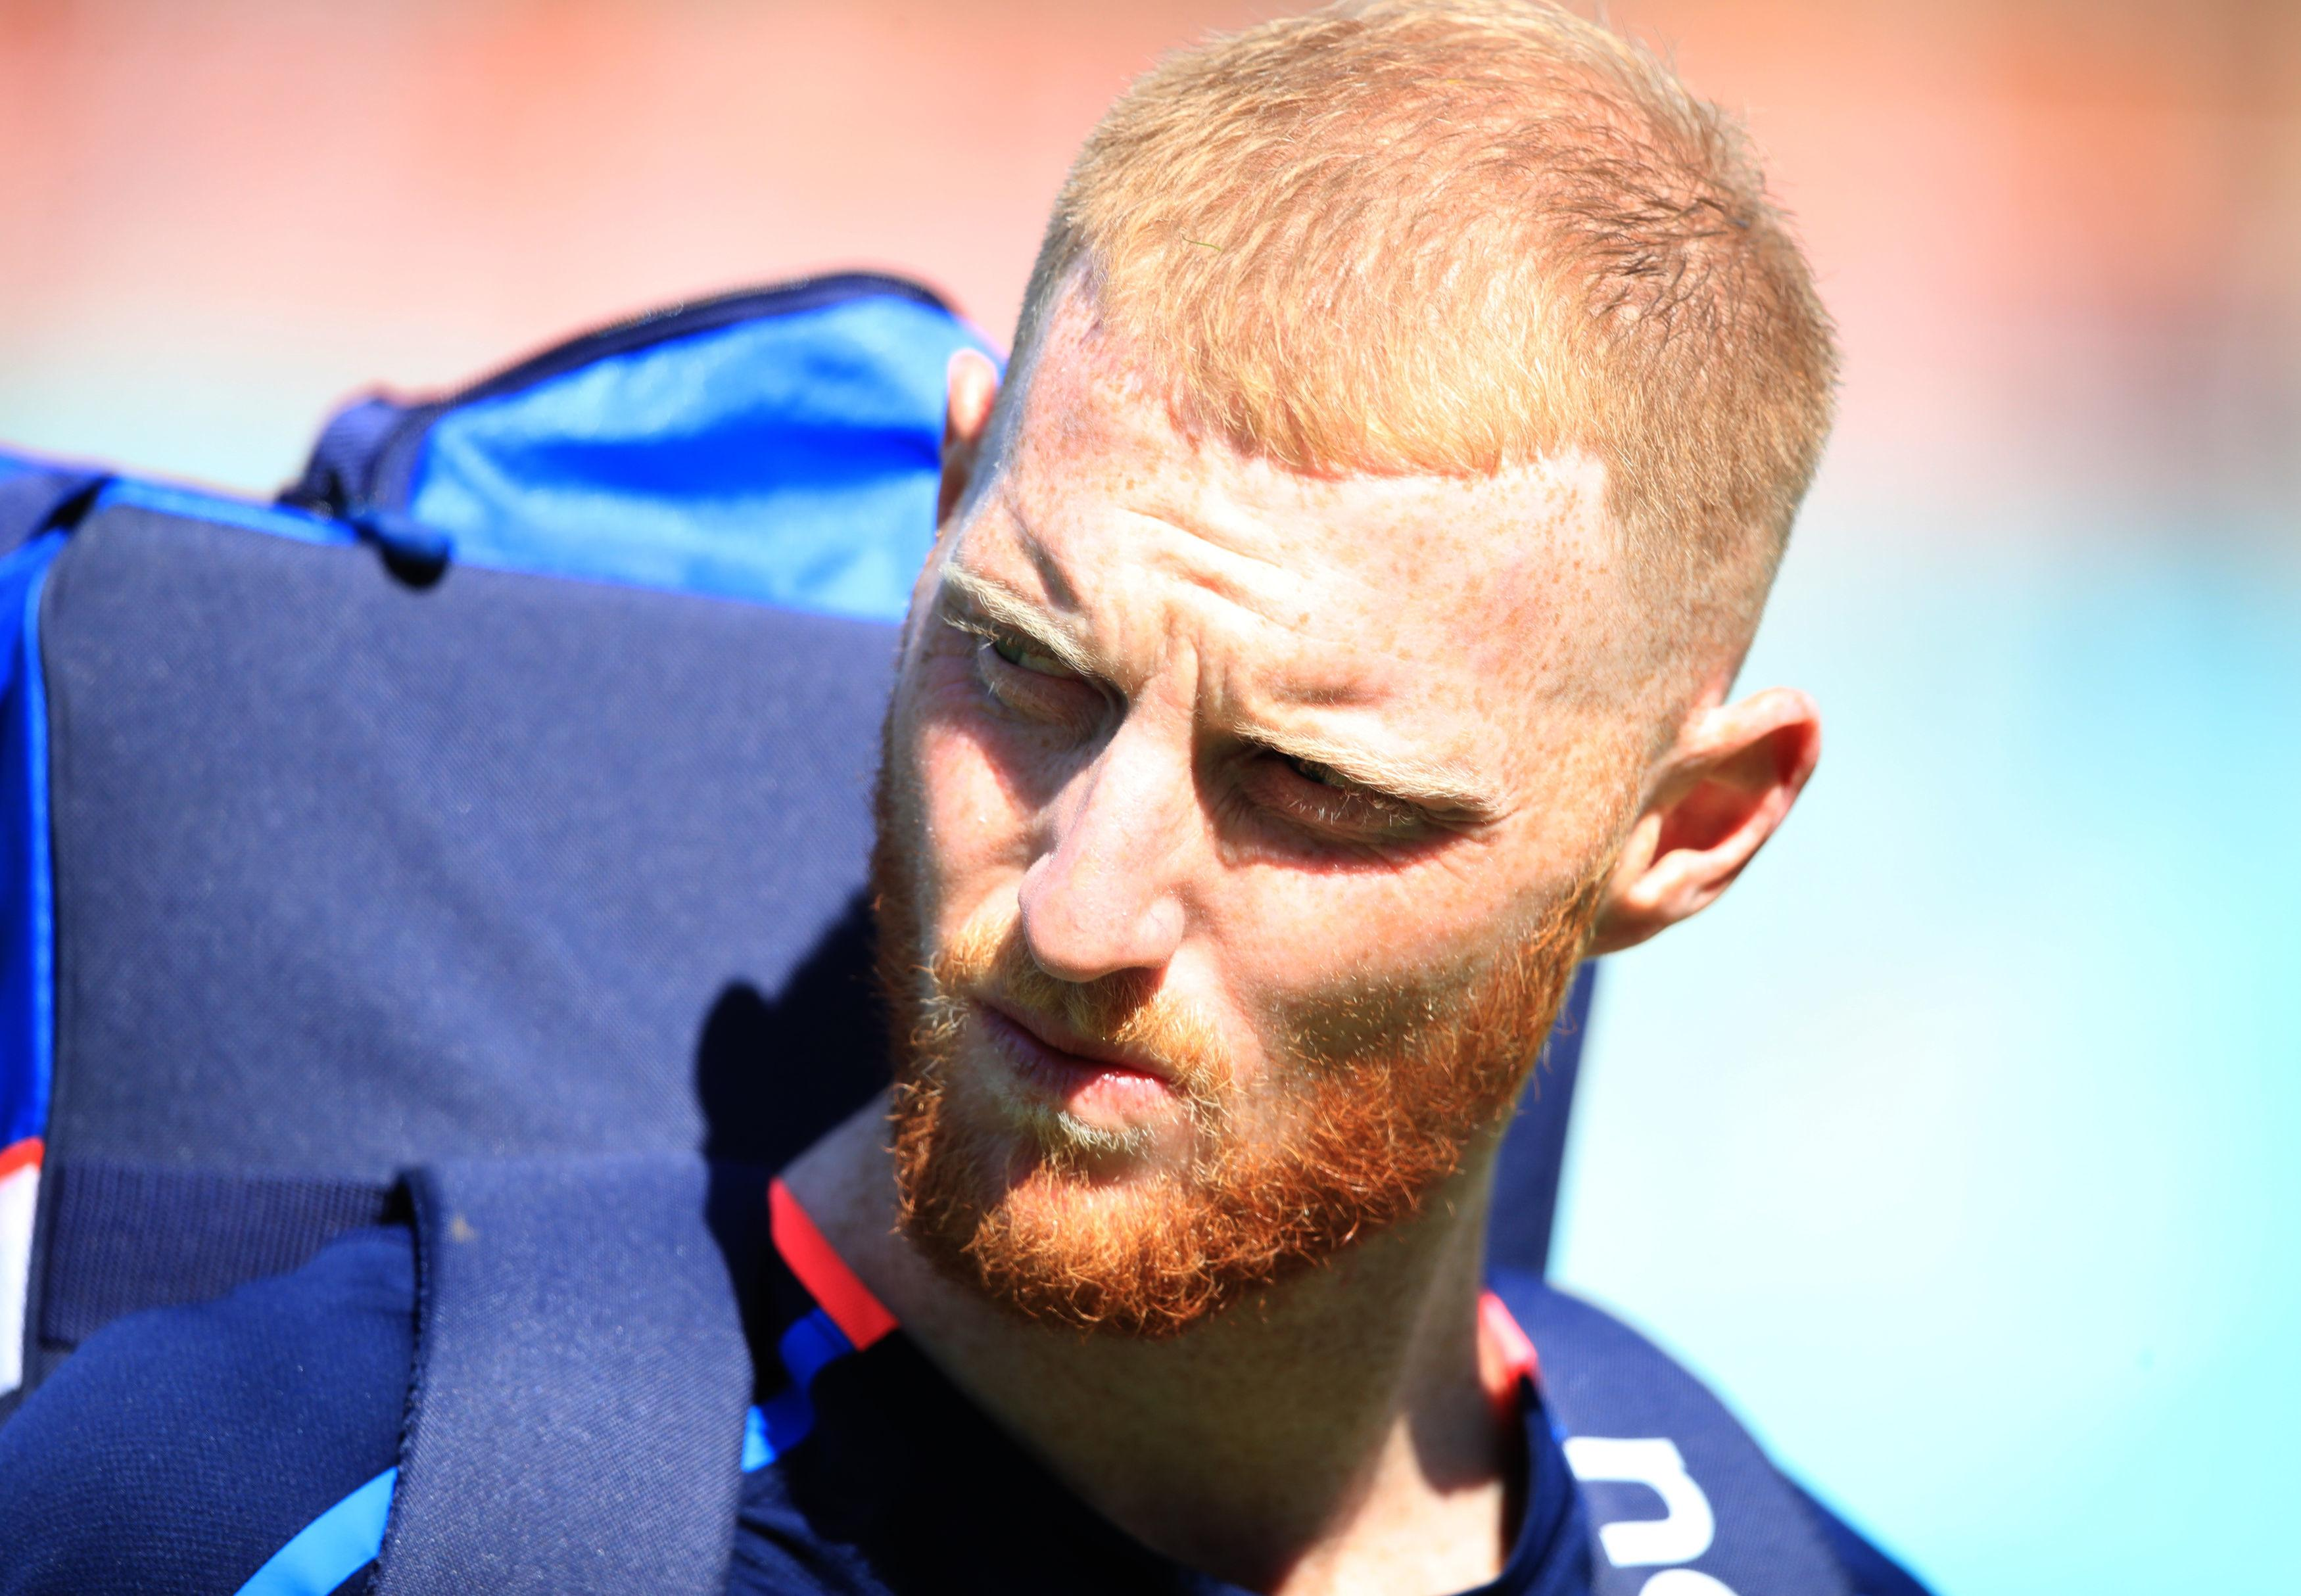 Ben Stokes will have to wait until December to see if he will be punished after his brawl in Bristol last year